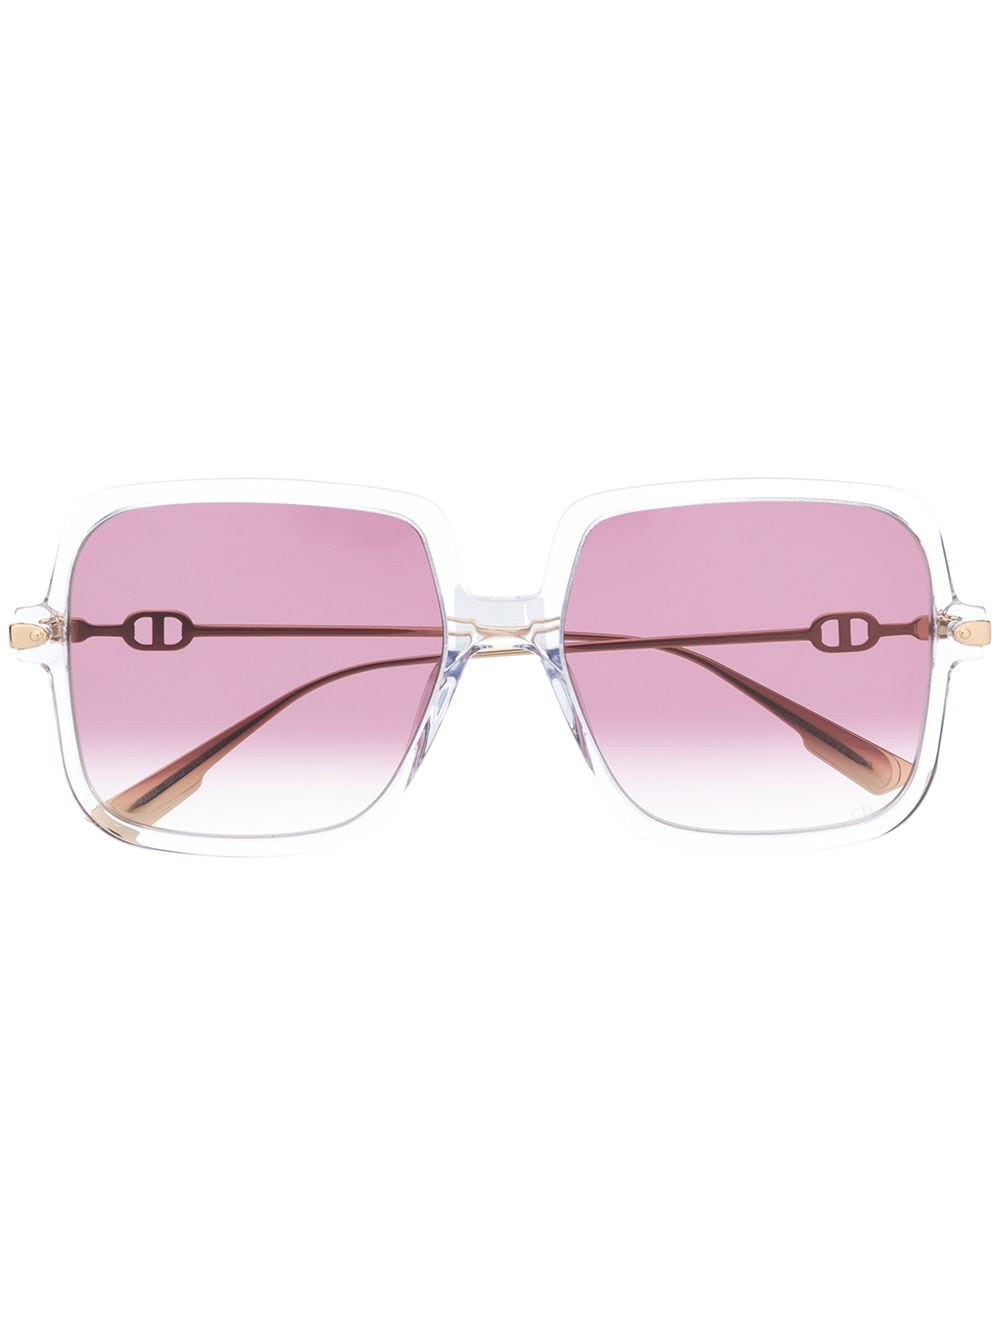 DiorLink1 / Clear Pink